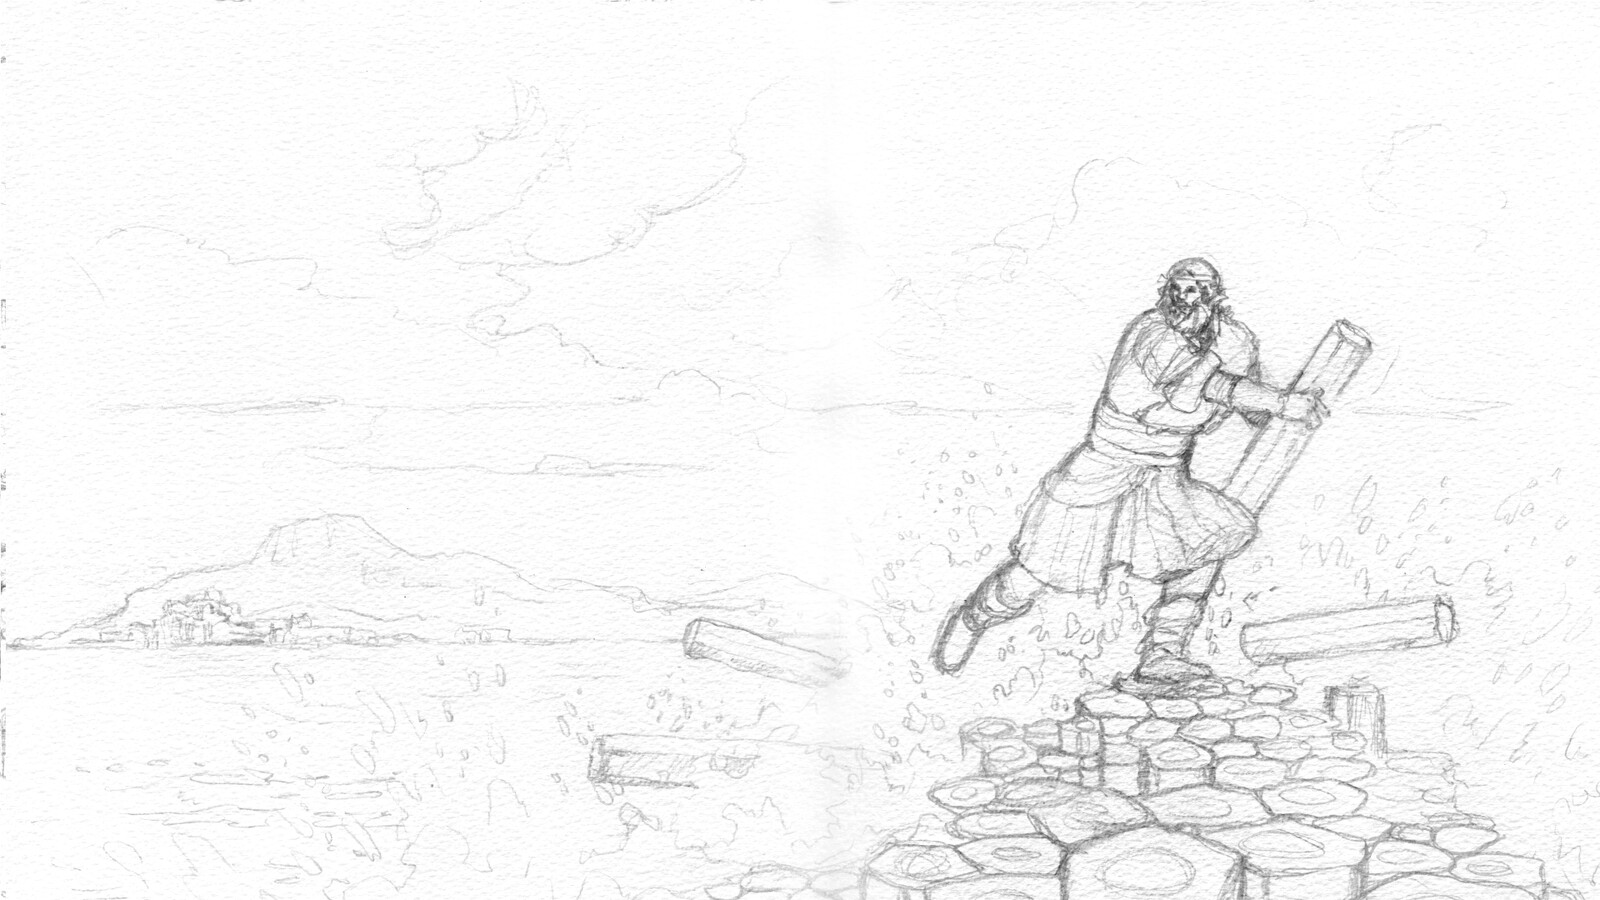 WIP sketch of Benanndonner destroying the causeway